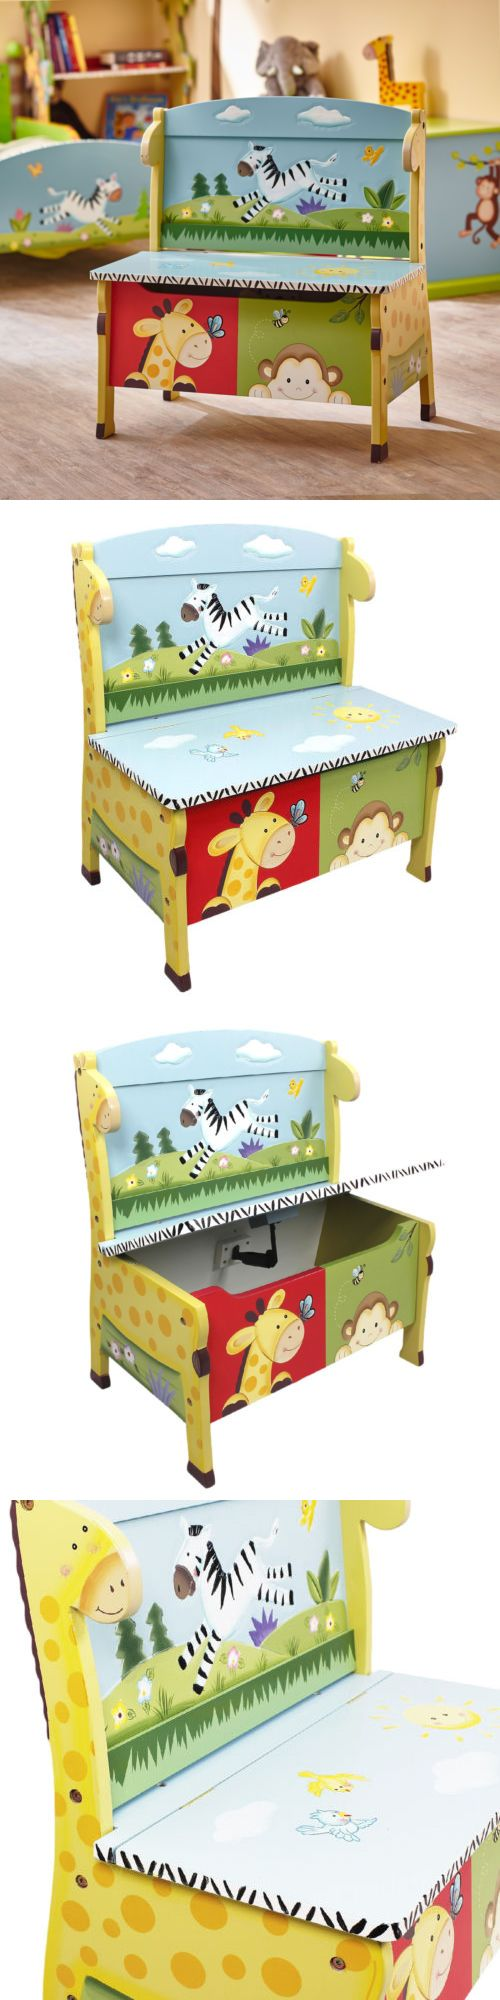 Toy Boxes 94932: Kids Storage Bench Toy Organizer Chest Box Safari Animals Children Playroom -> BUY IT NOW ONLY: $119.89 on eBay!